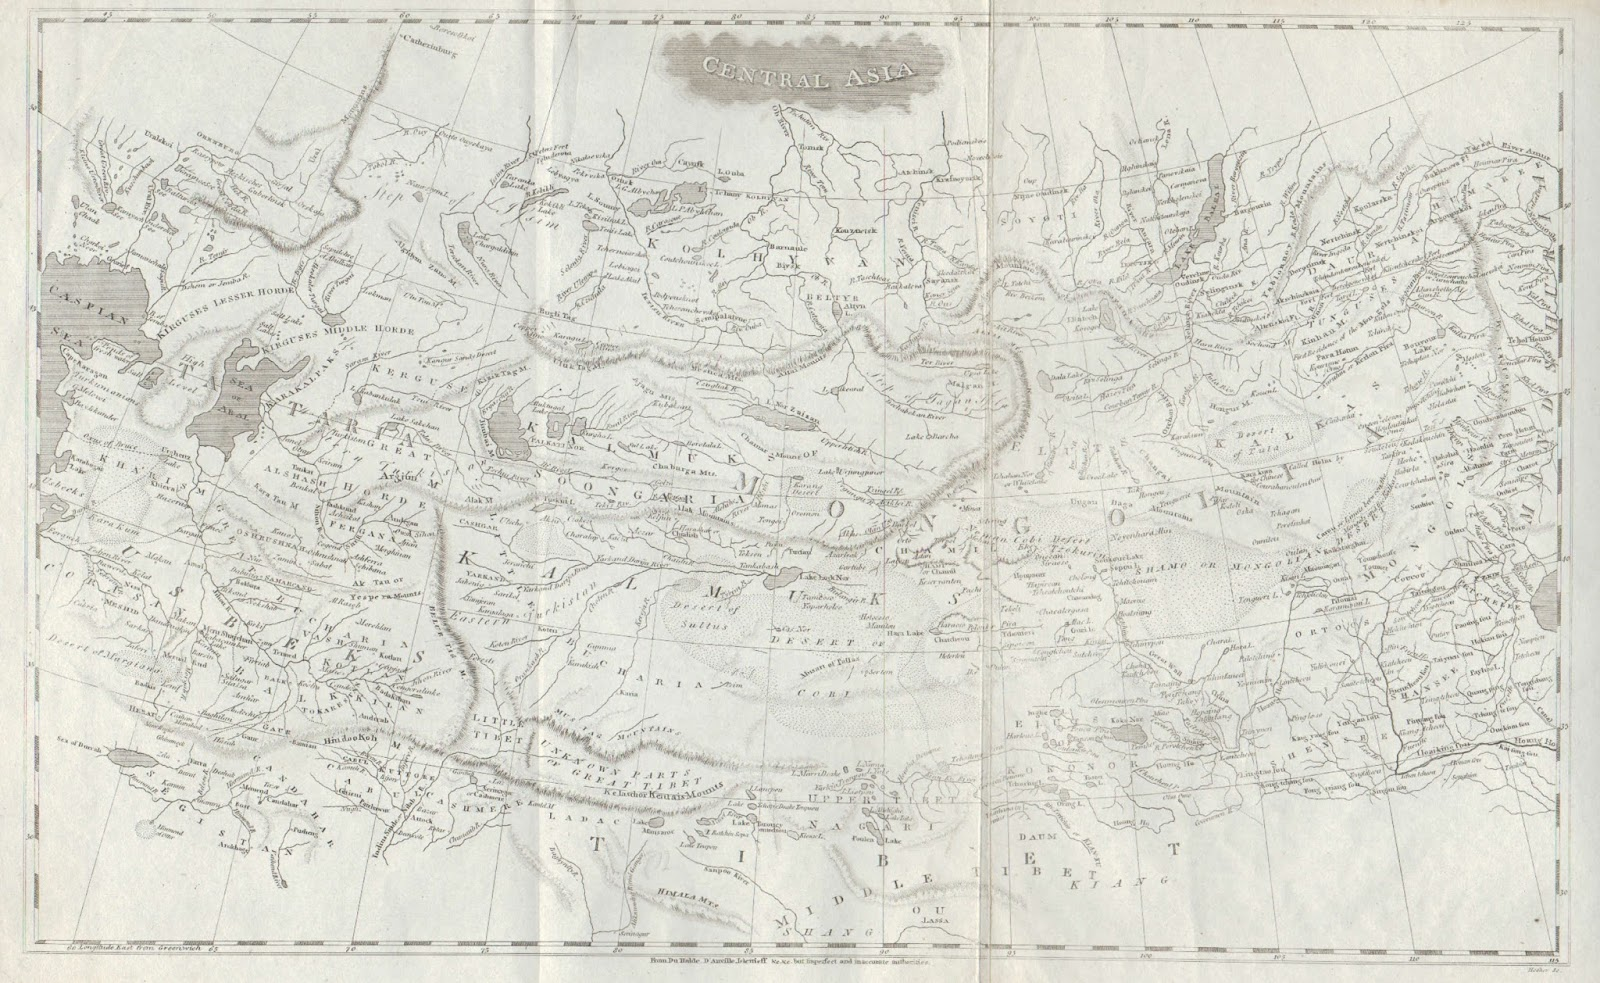 thus he drew a border around a territory labeled colorado in the southern part of texas